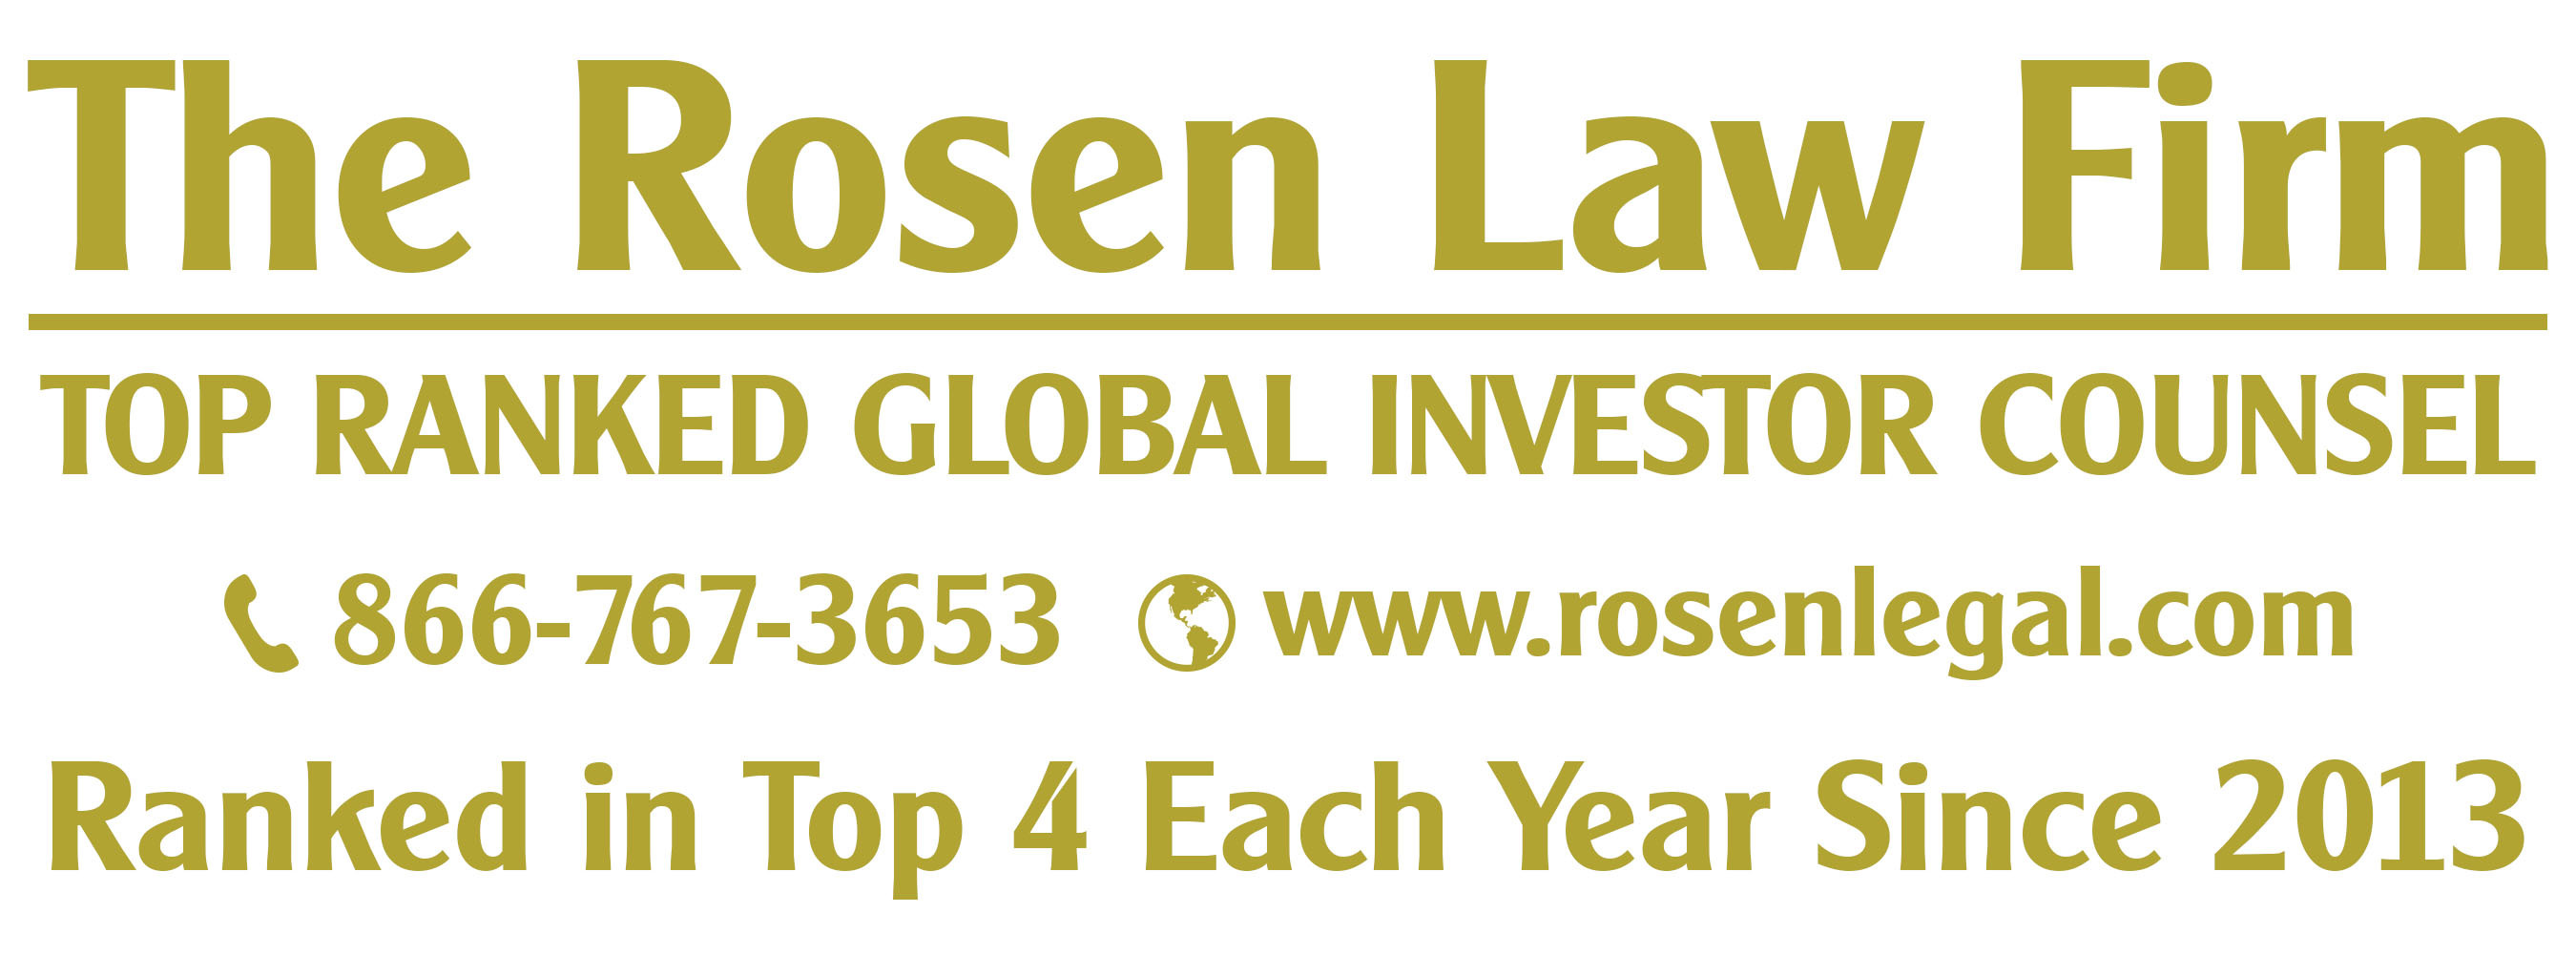 INVESTOR ALERT: Rosen Law Firm Reminds Diplomat Pharmacy, Inc. Investors of Important Deadline in Securities Class Action Filed by the Firm - DPLO